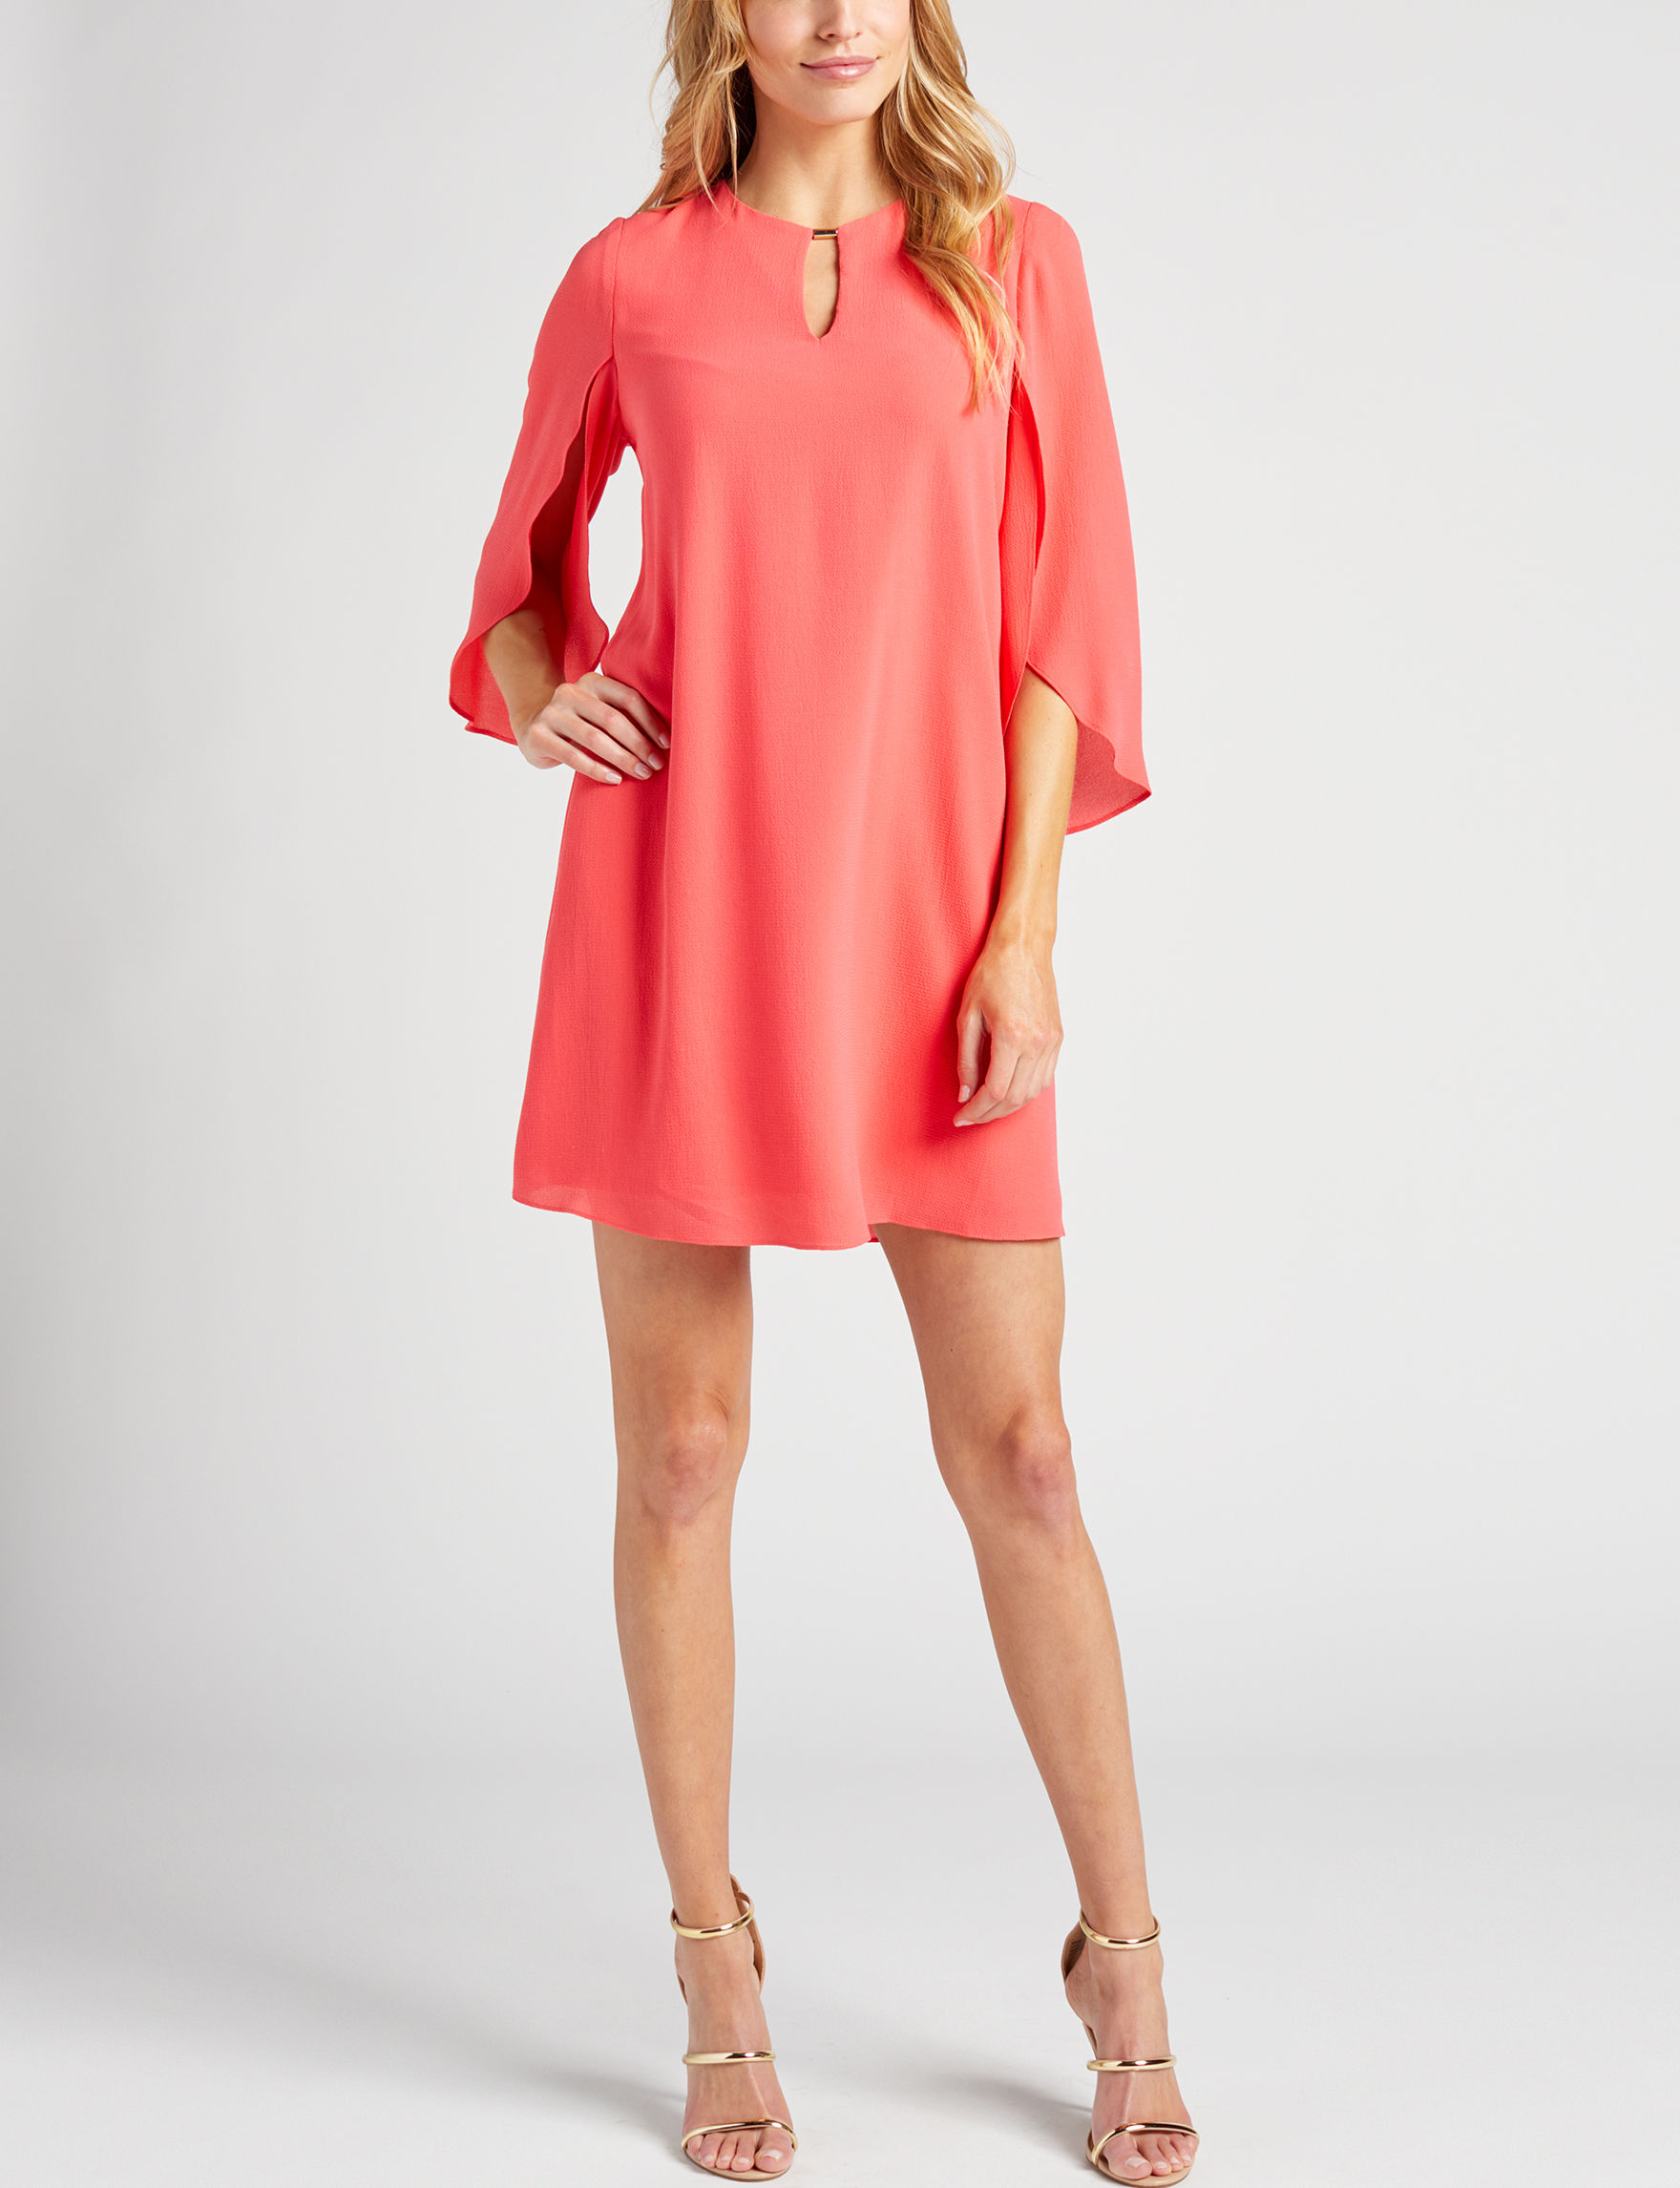 Connected Coral Everyday & Casual Shift Dresses